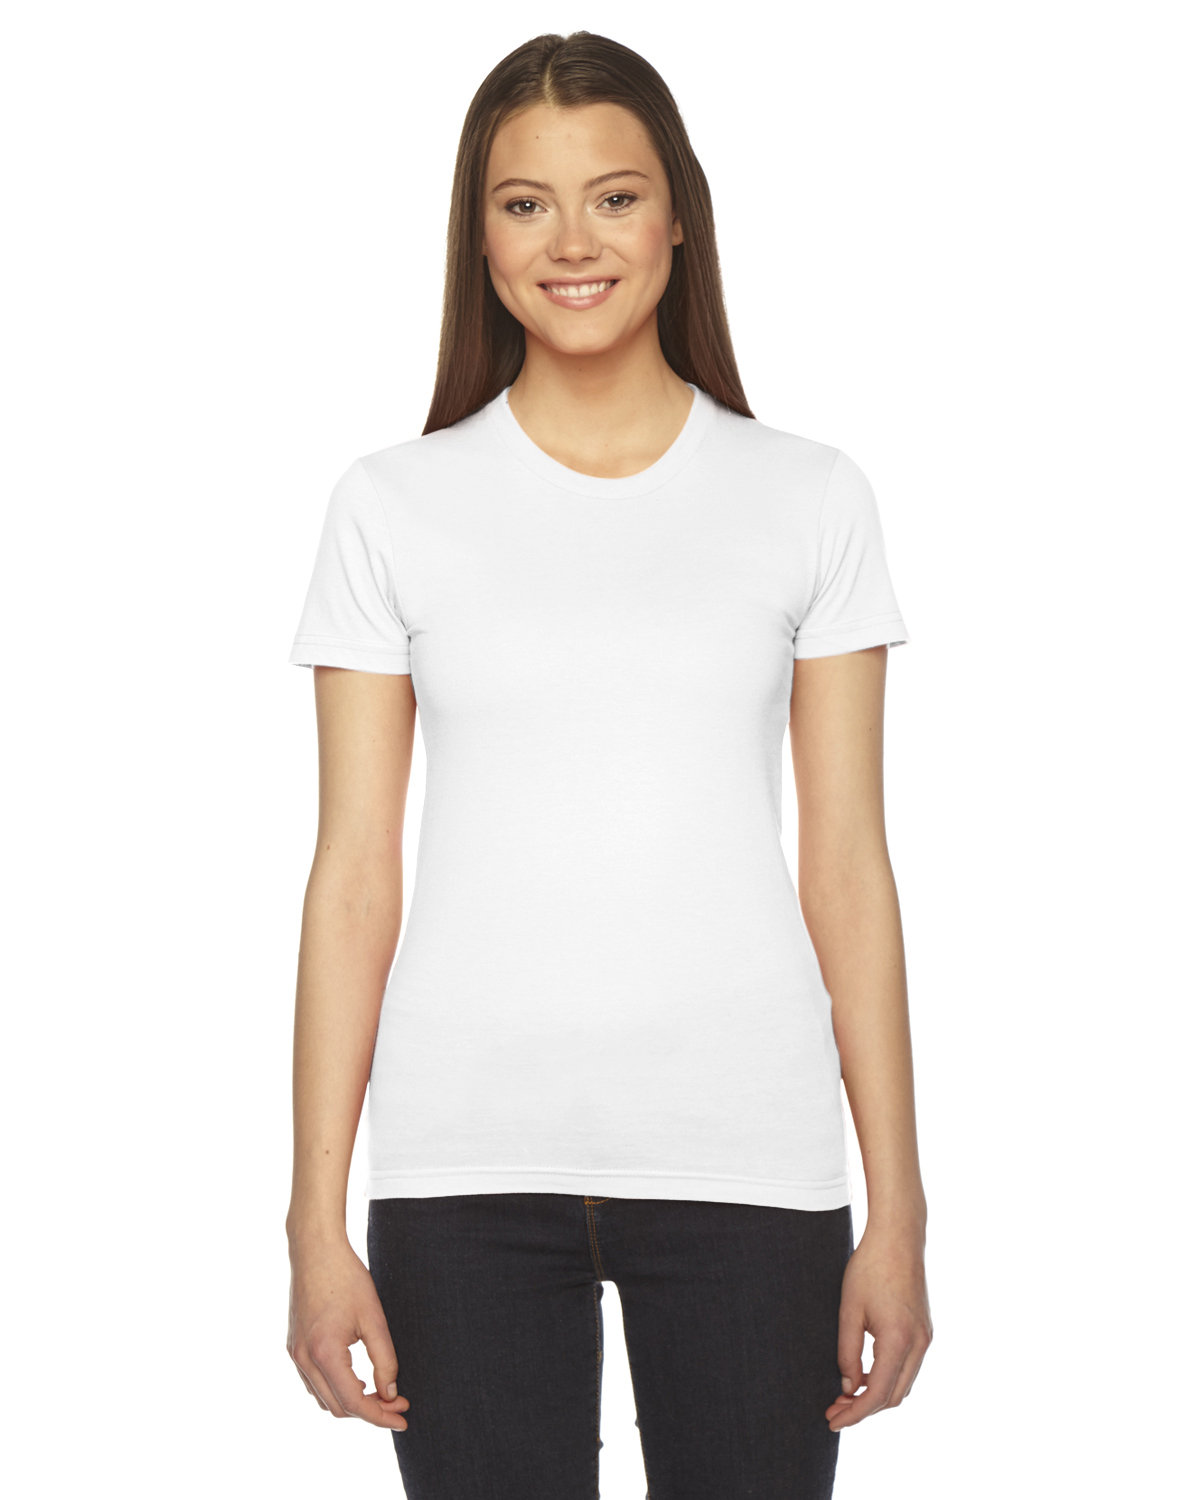 American Apparel Ladies' Fine Jersey USA Made Short-Sleeve T-Shirt WHITE